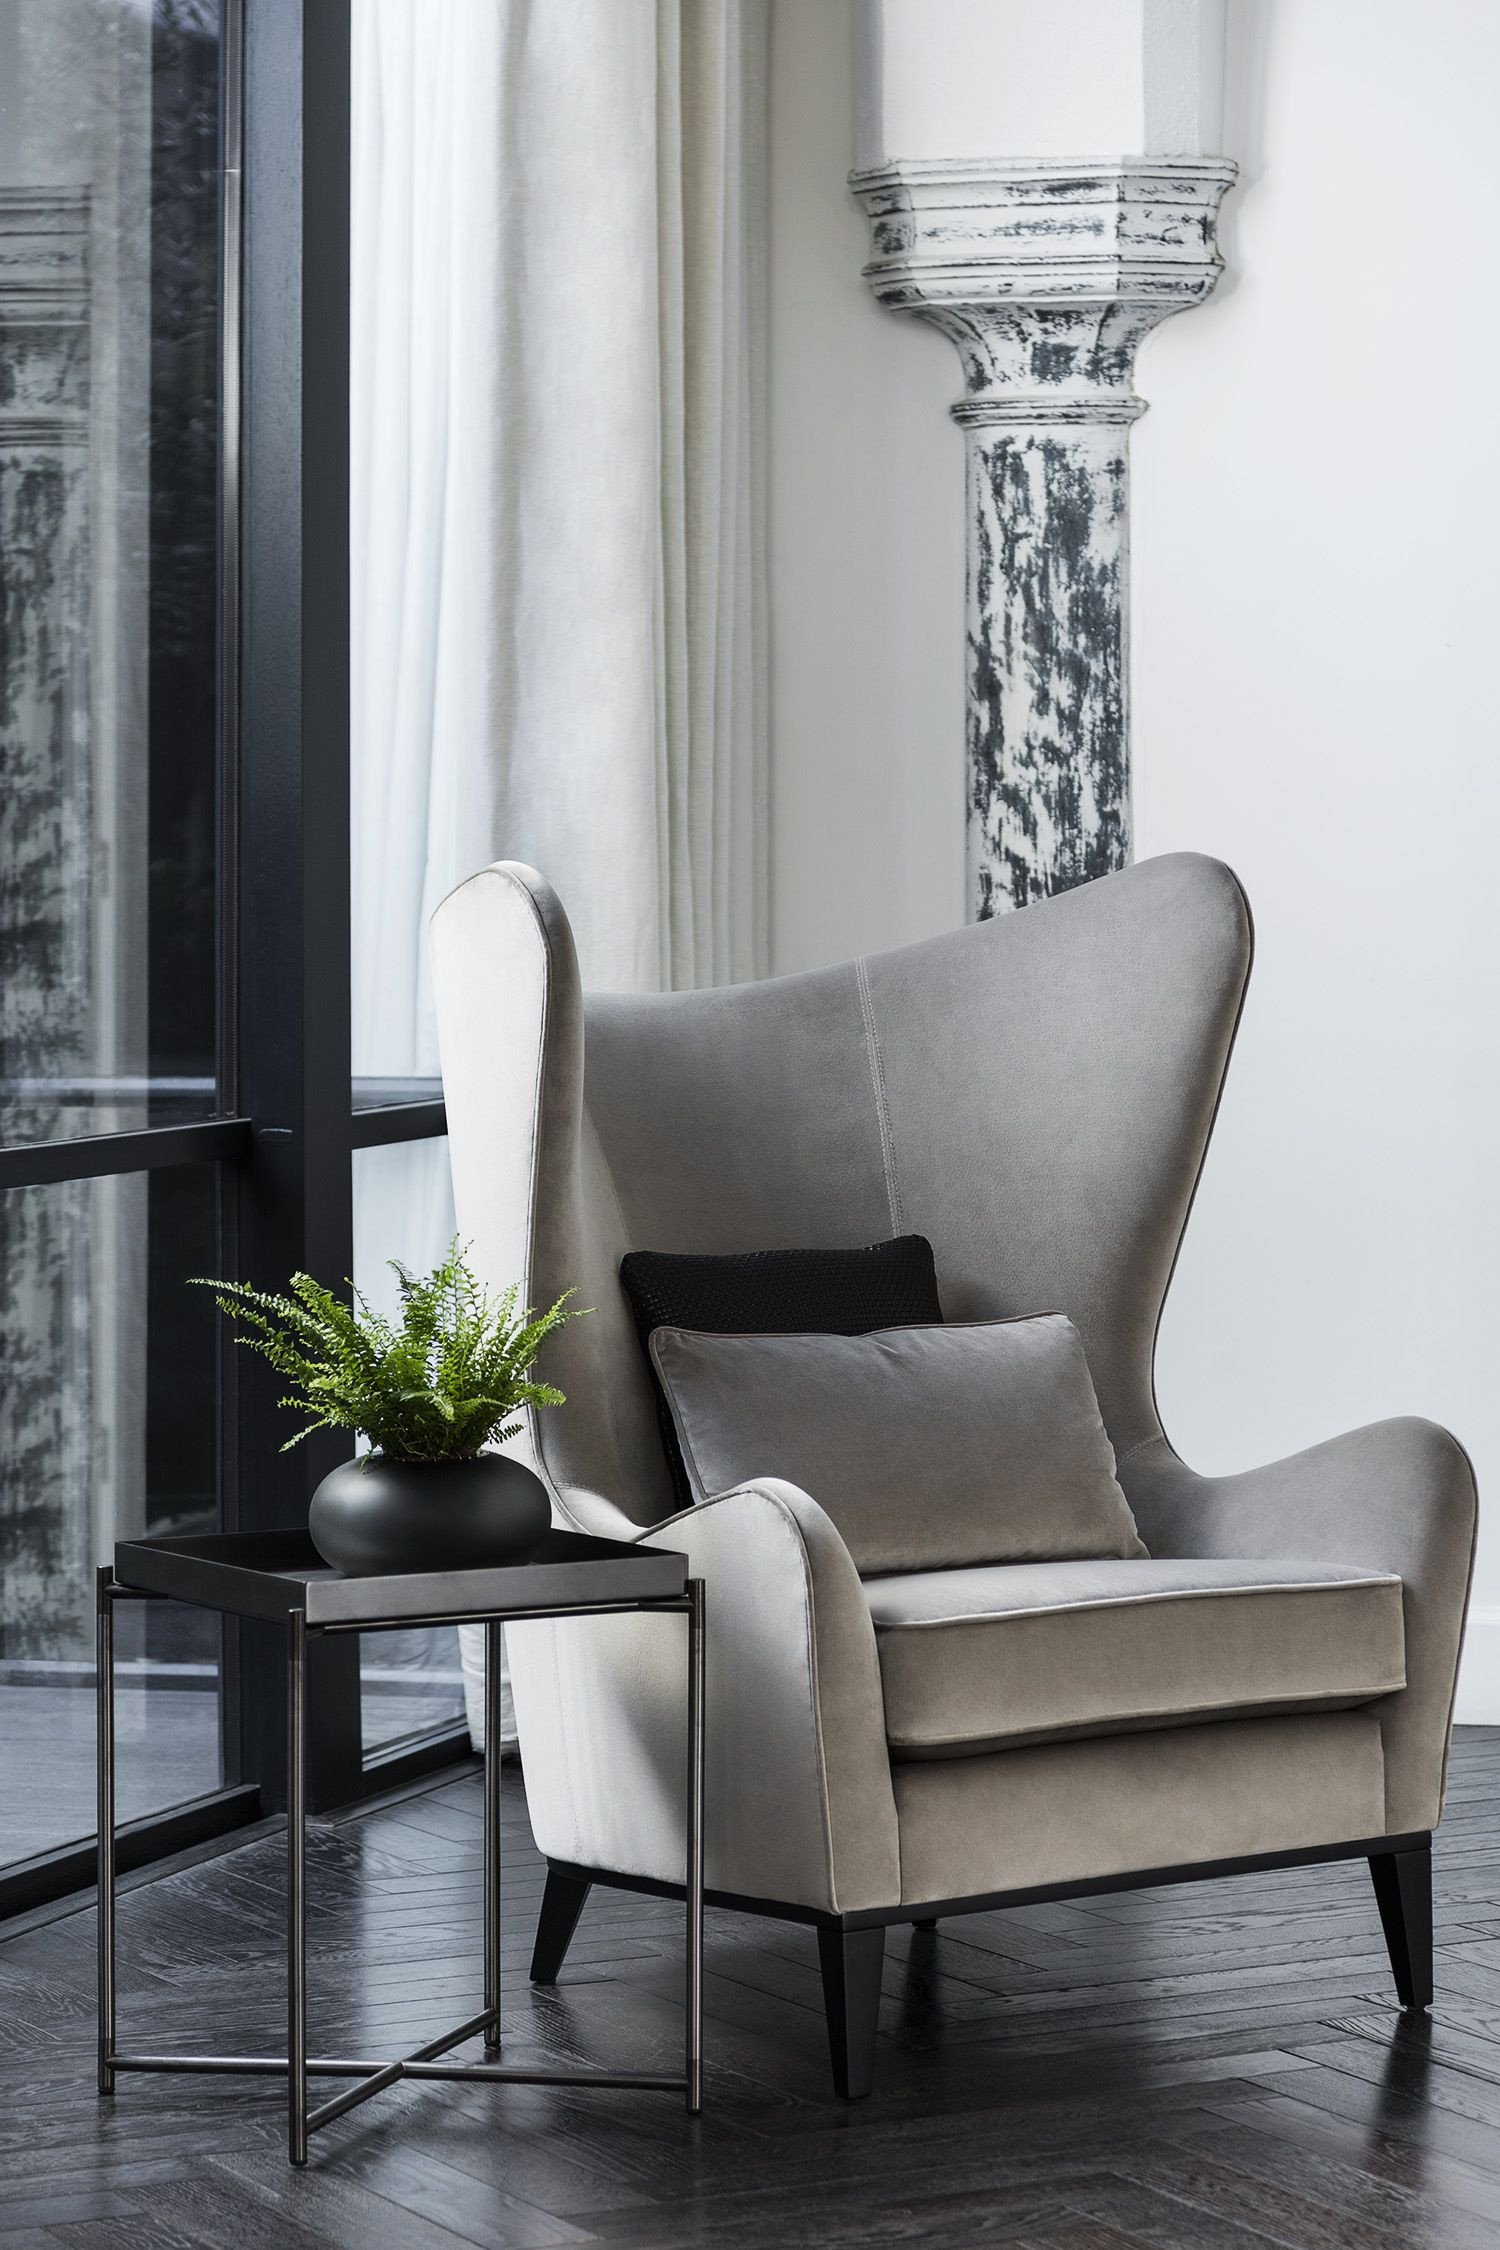 Small Comfy Chair for Bedroom Best Of Our Monroe Wingback Armchair is A Statement Piece for Your